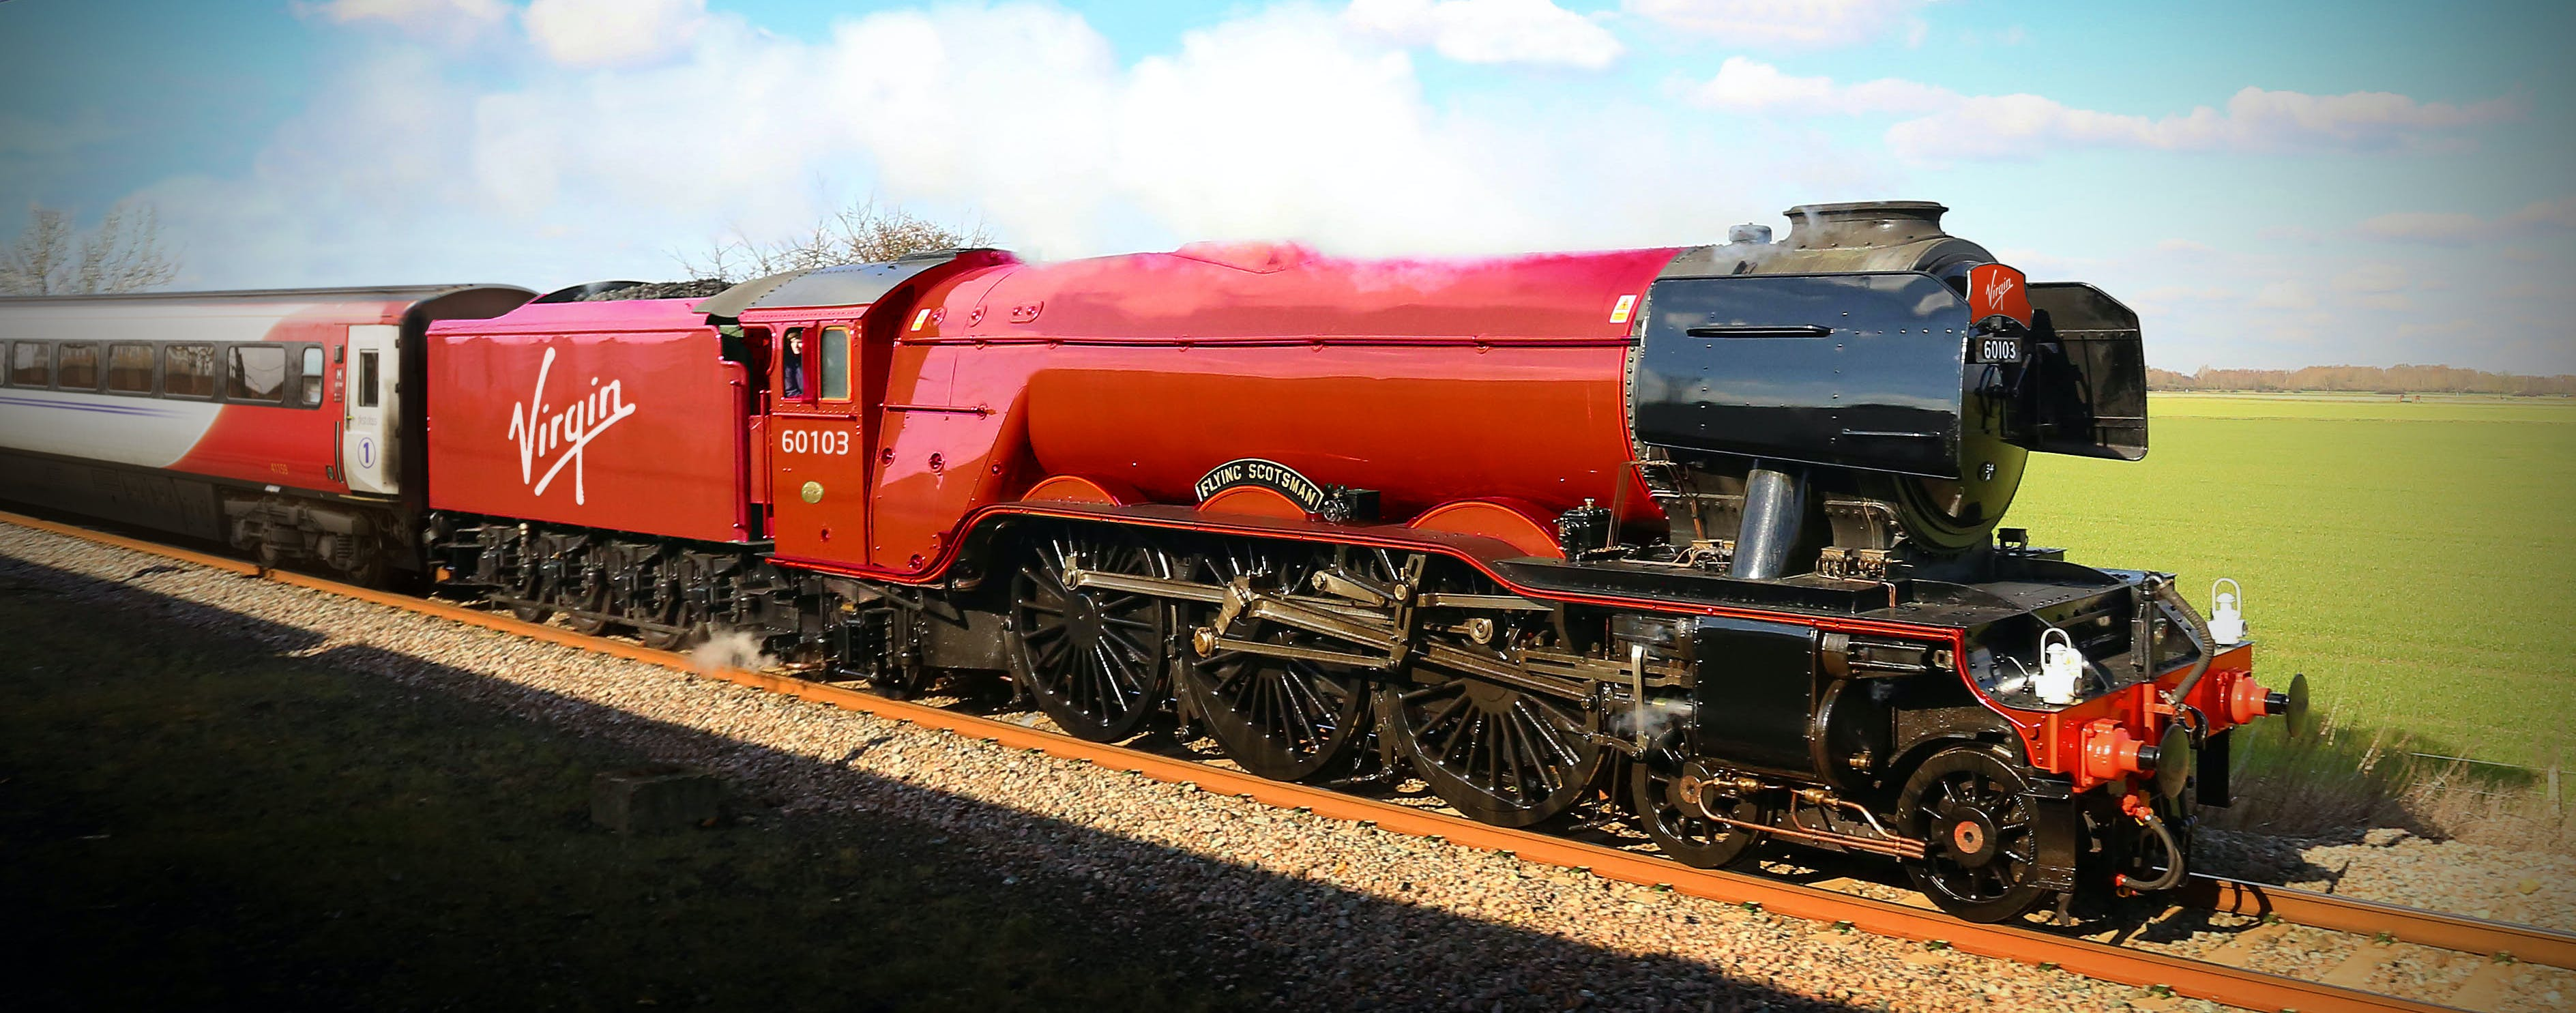 FlyingScotsman_Virgin (3)